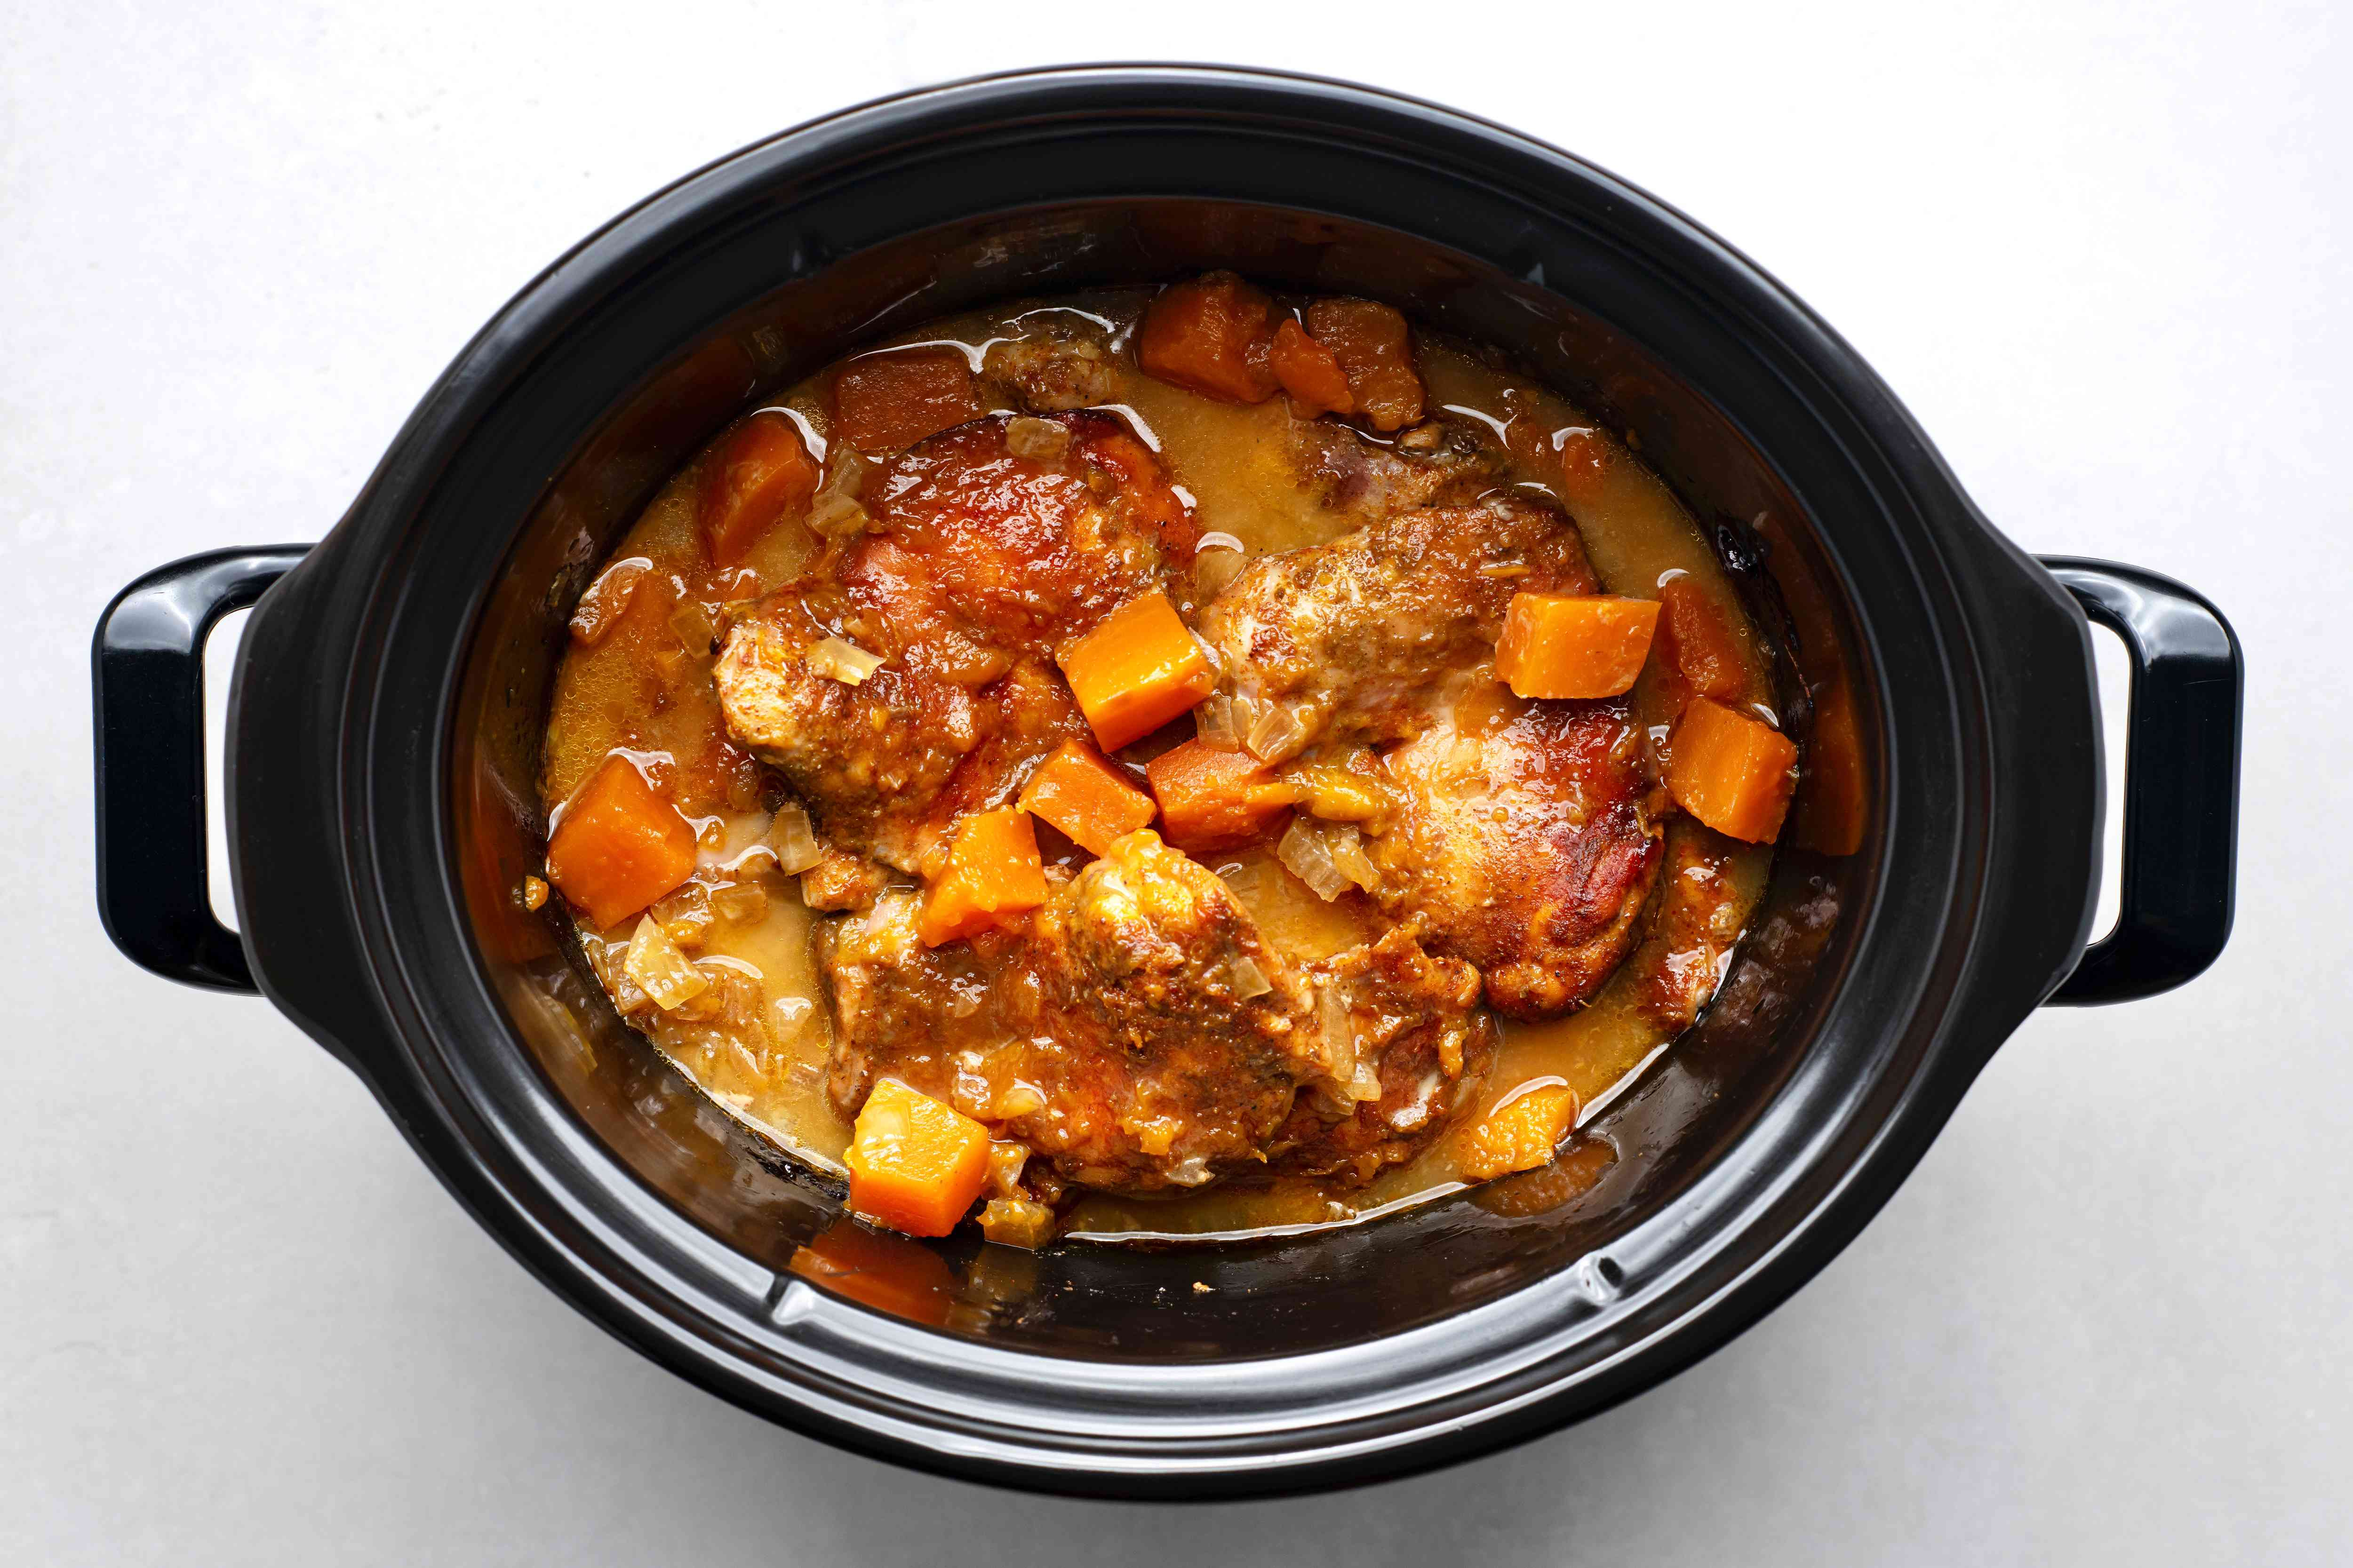 chicken and vegetables cooking in a crockpot